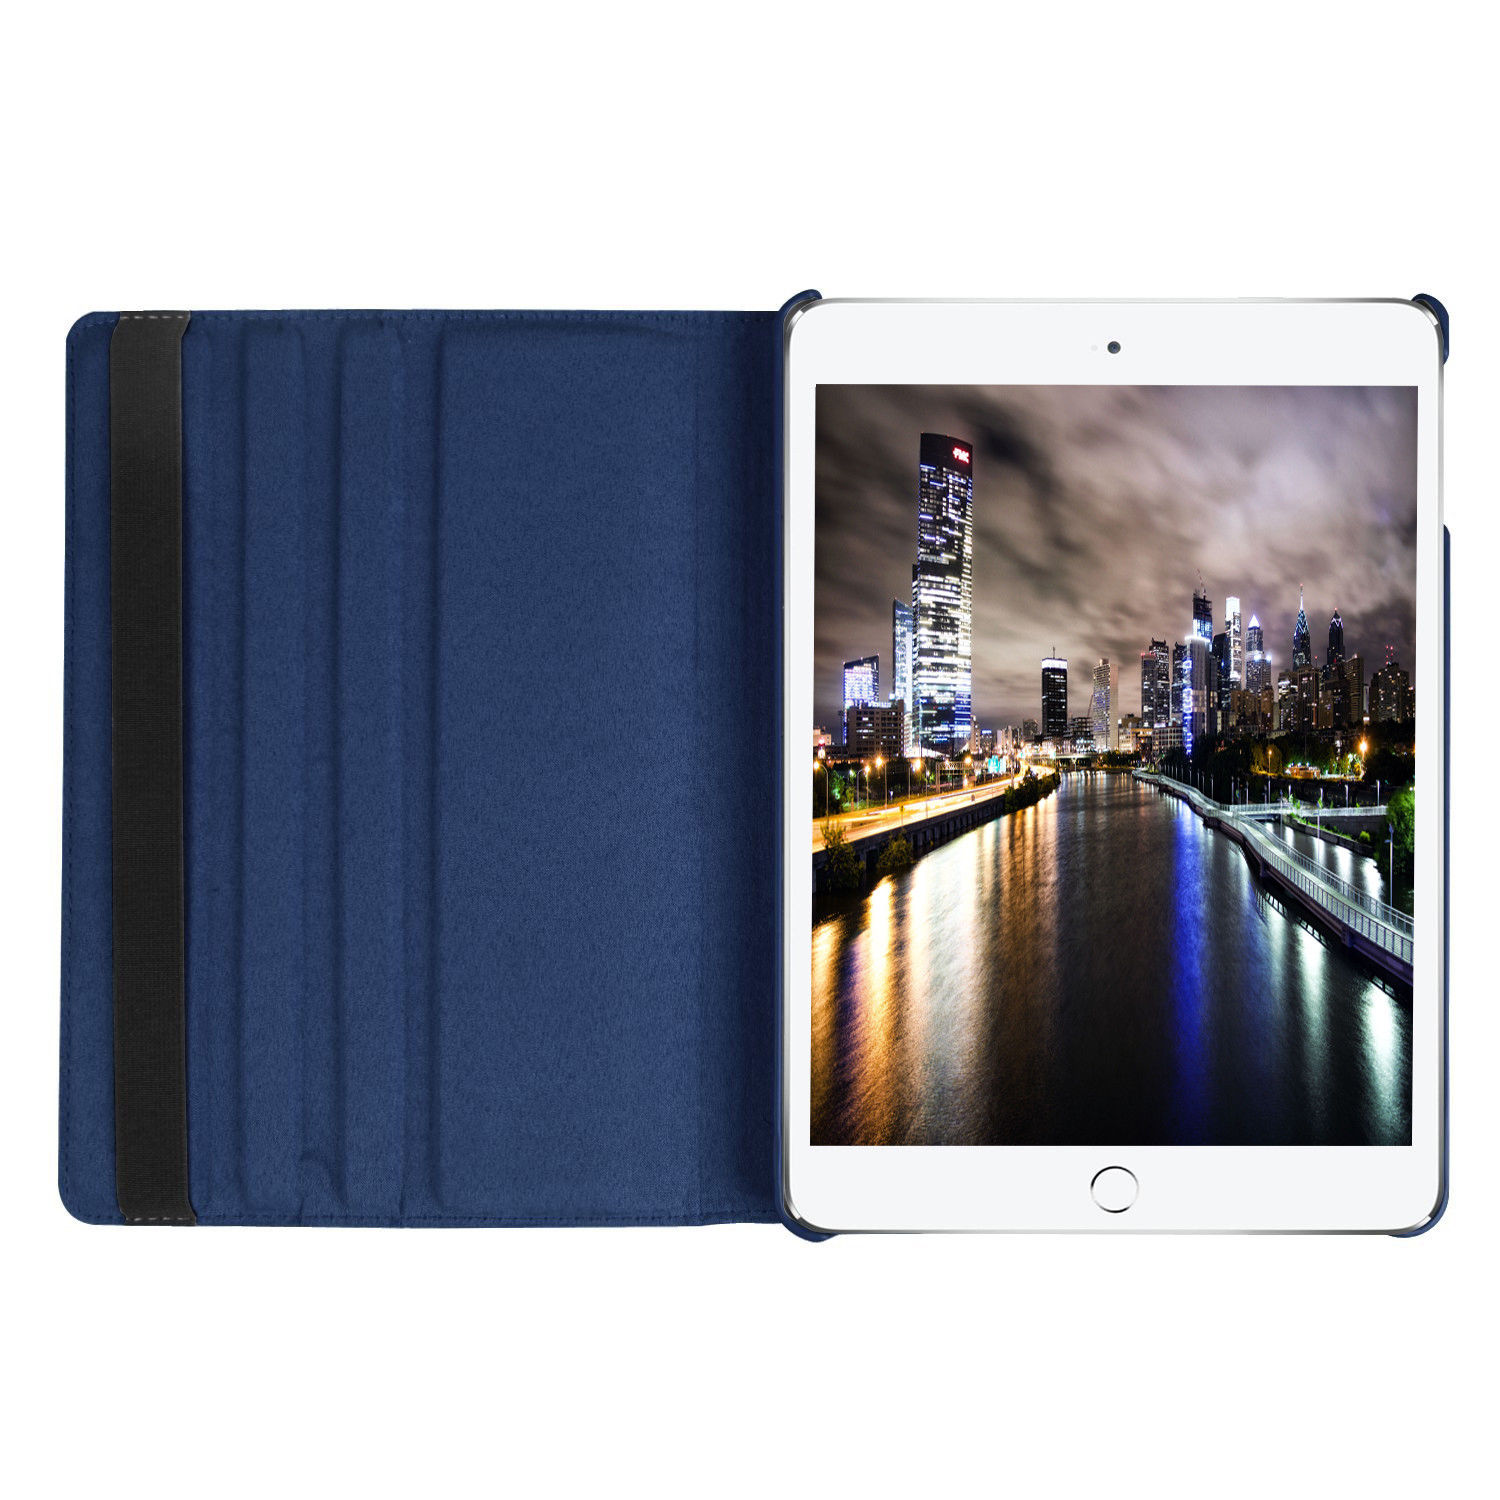 Custodia-per-Apple-iPad-Pro-2017-iPad-Air-3-10-5-Smart-Cover-Case-Custodia-Protettiva miniatura 22